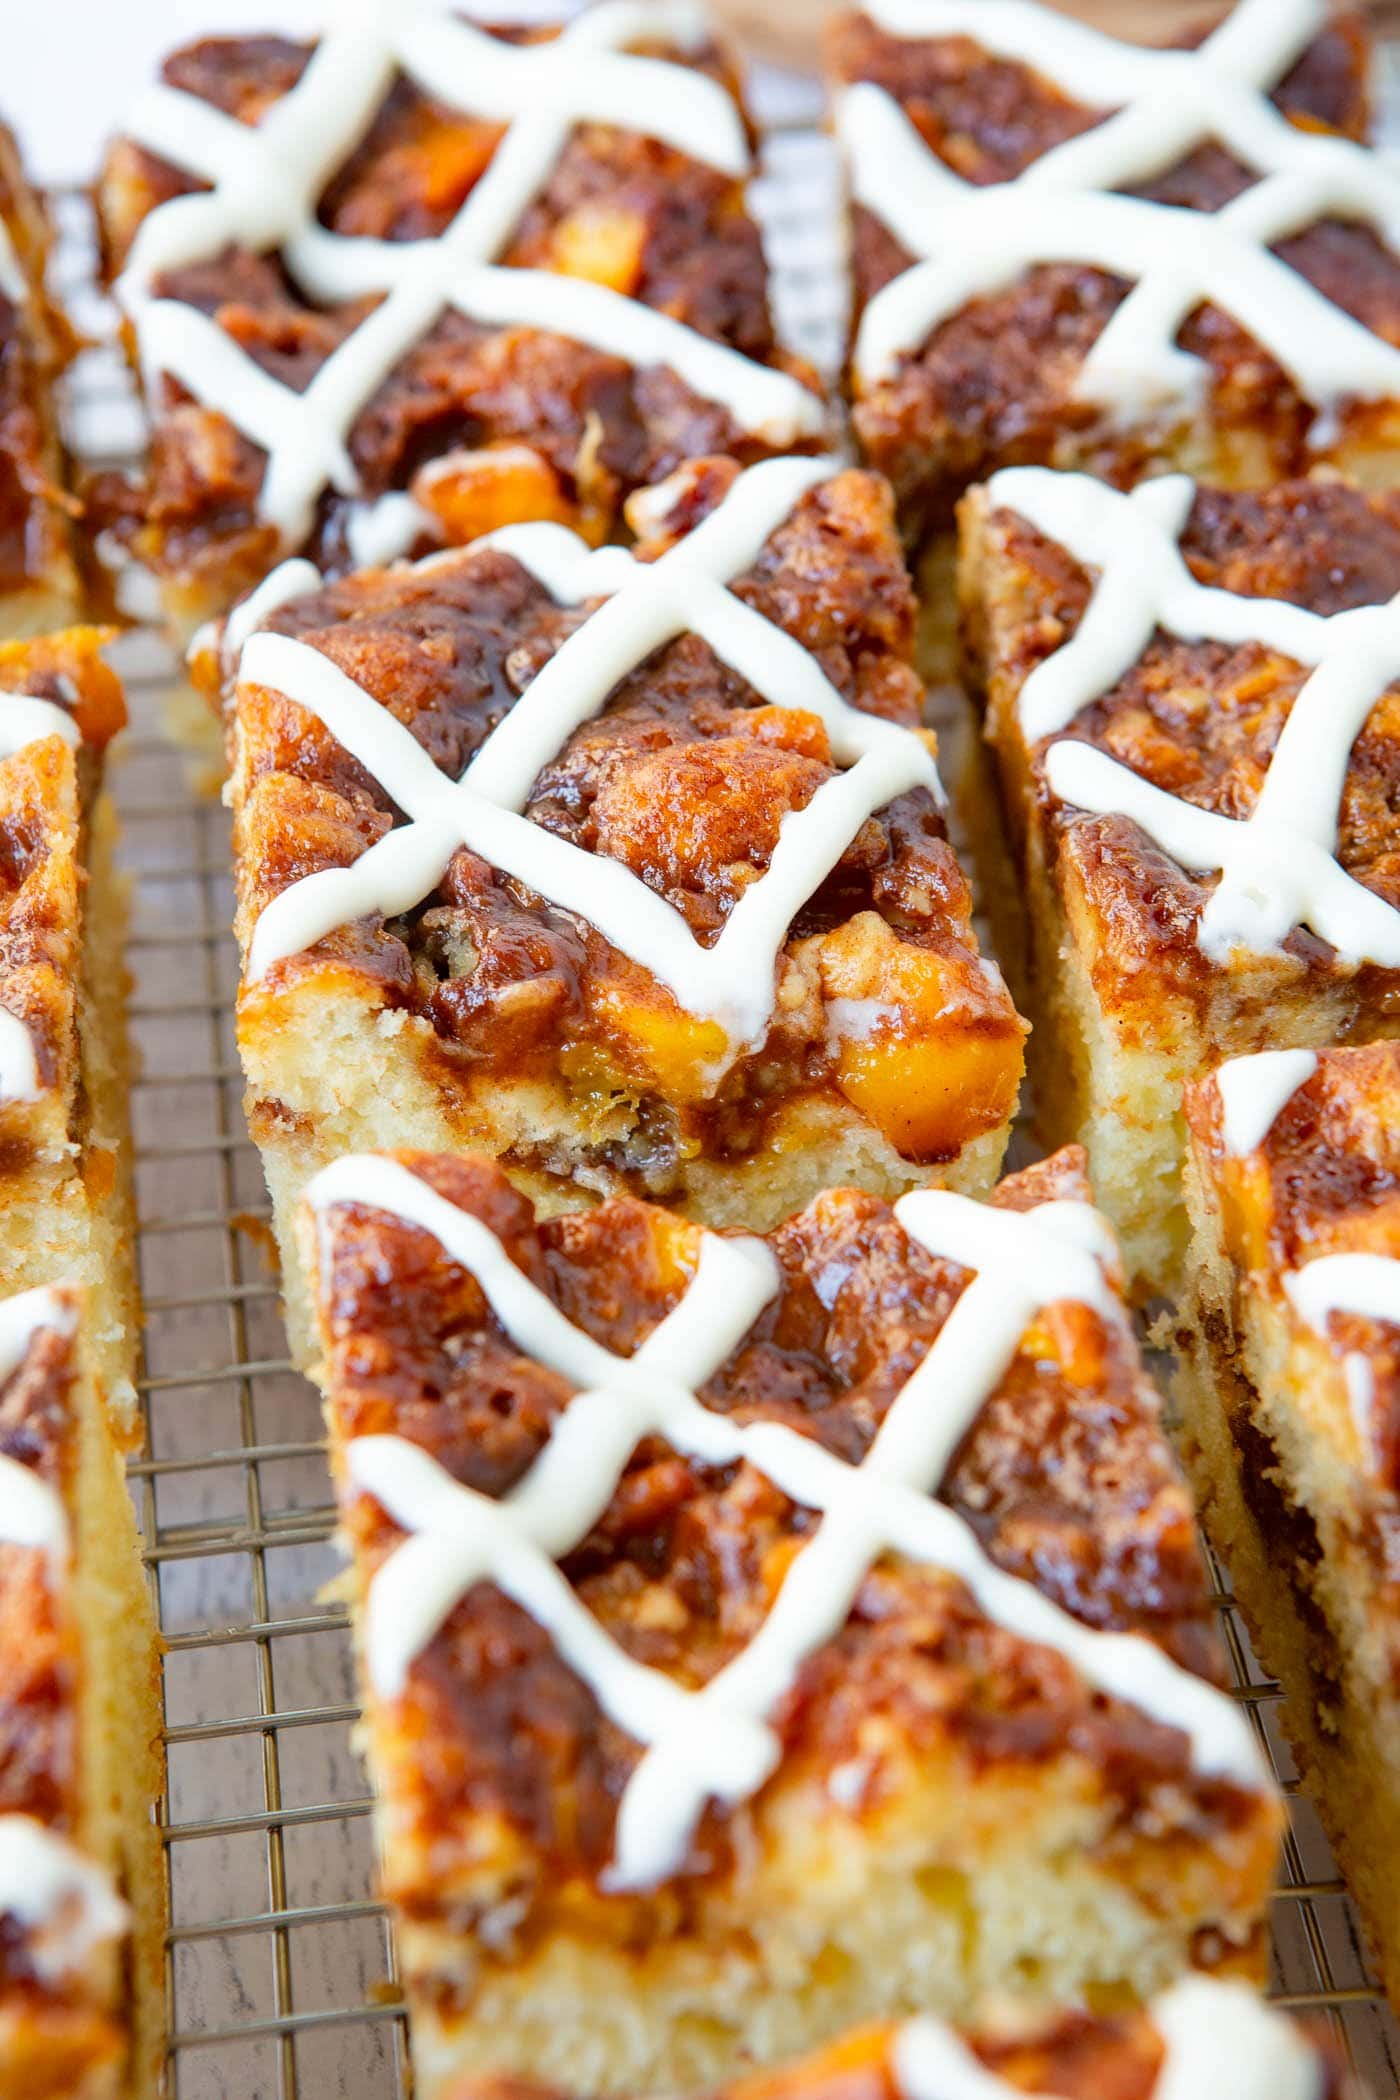 Several pieces of peach coffee cake with sweet glaze on top